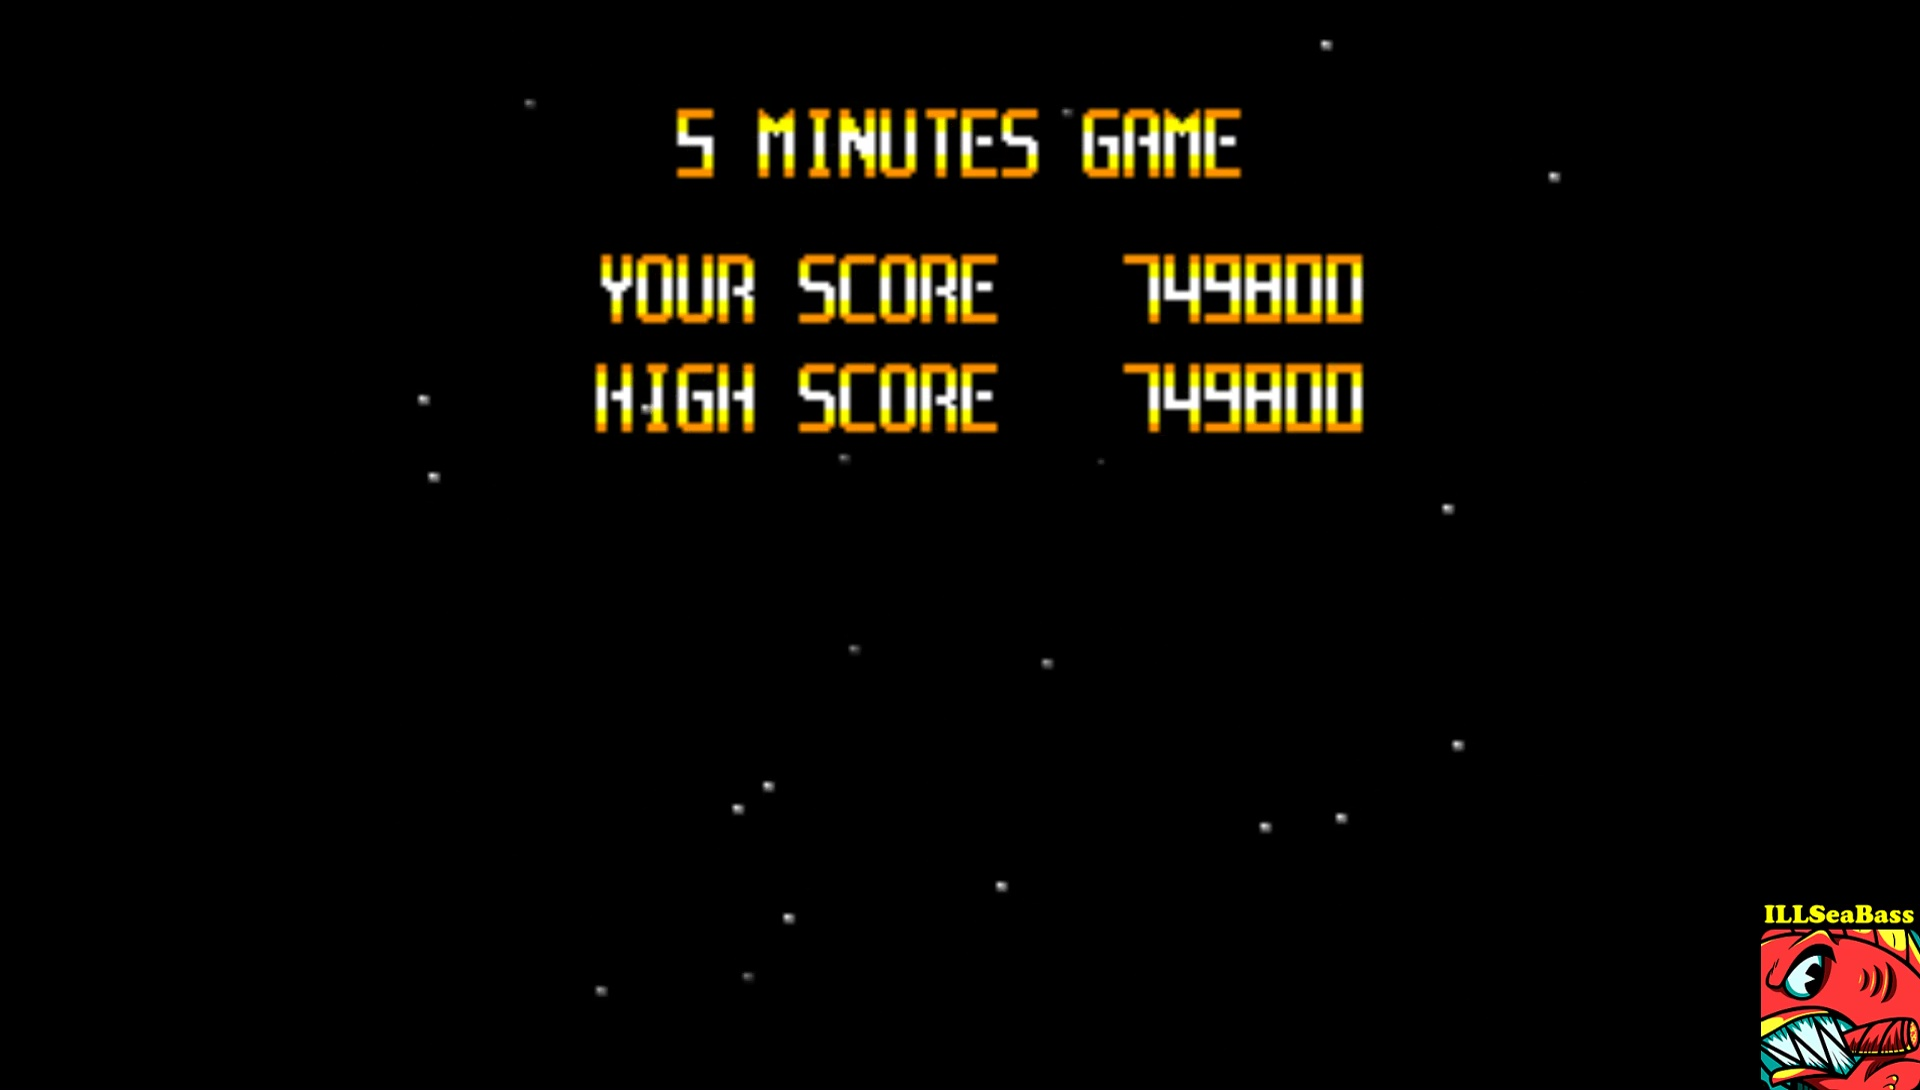 ILLSeaBass: Super Star Soldier [5 Minutes Game] (TurboGrafx-16/PC Engine Emulated) 749,800 points on 2017-06-20 21:40:09